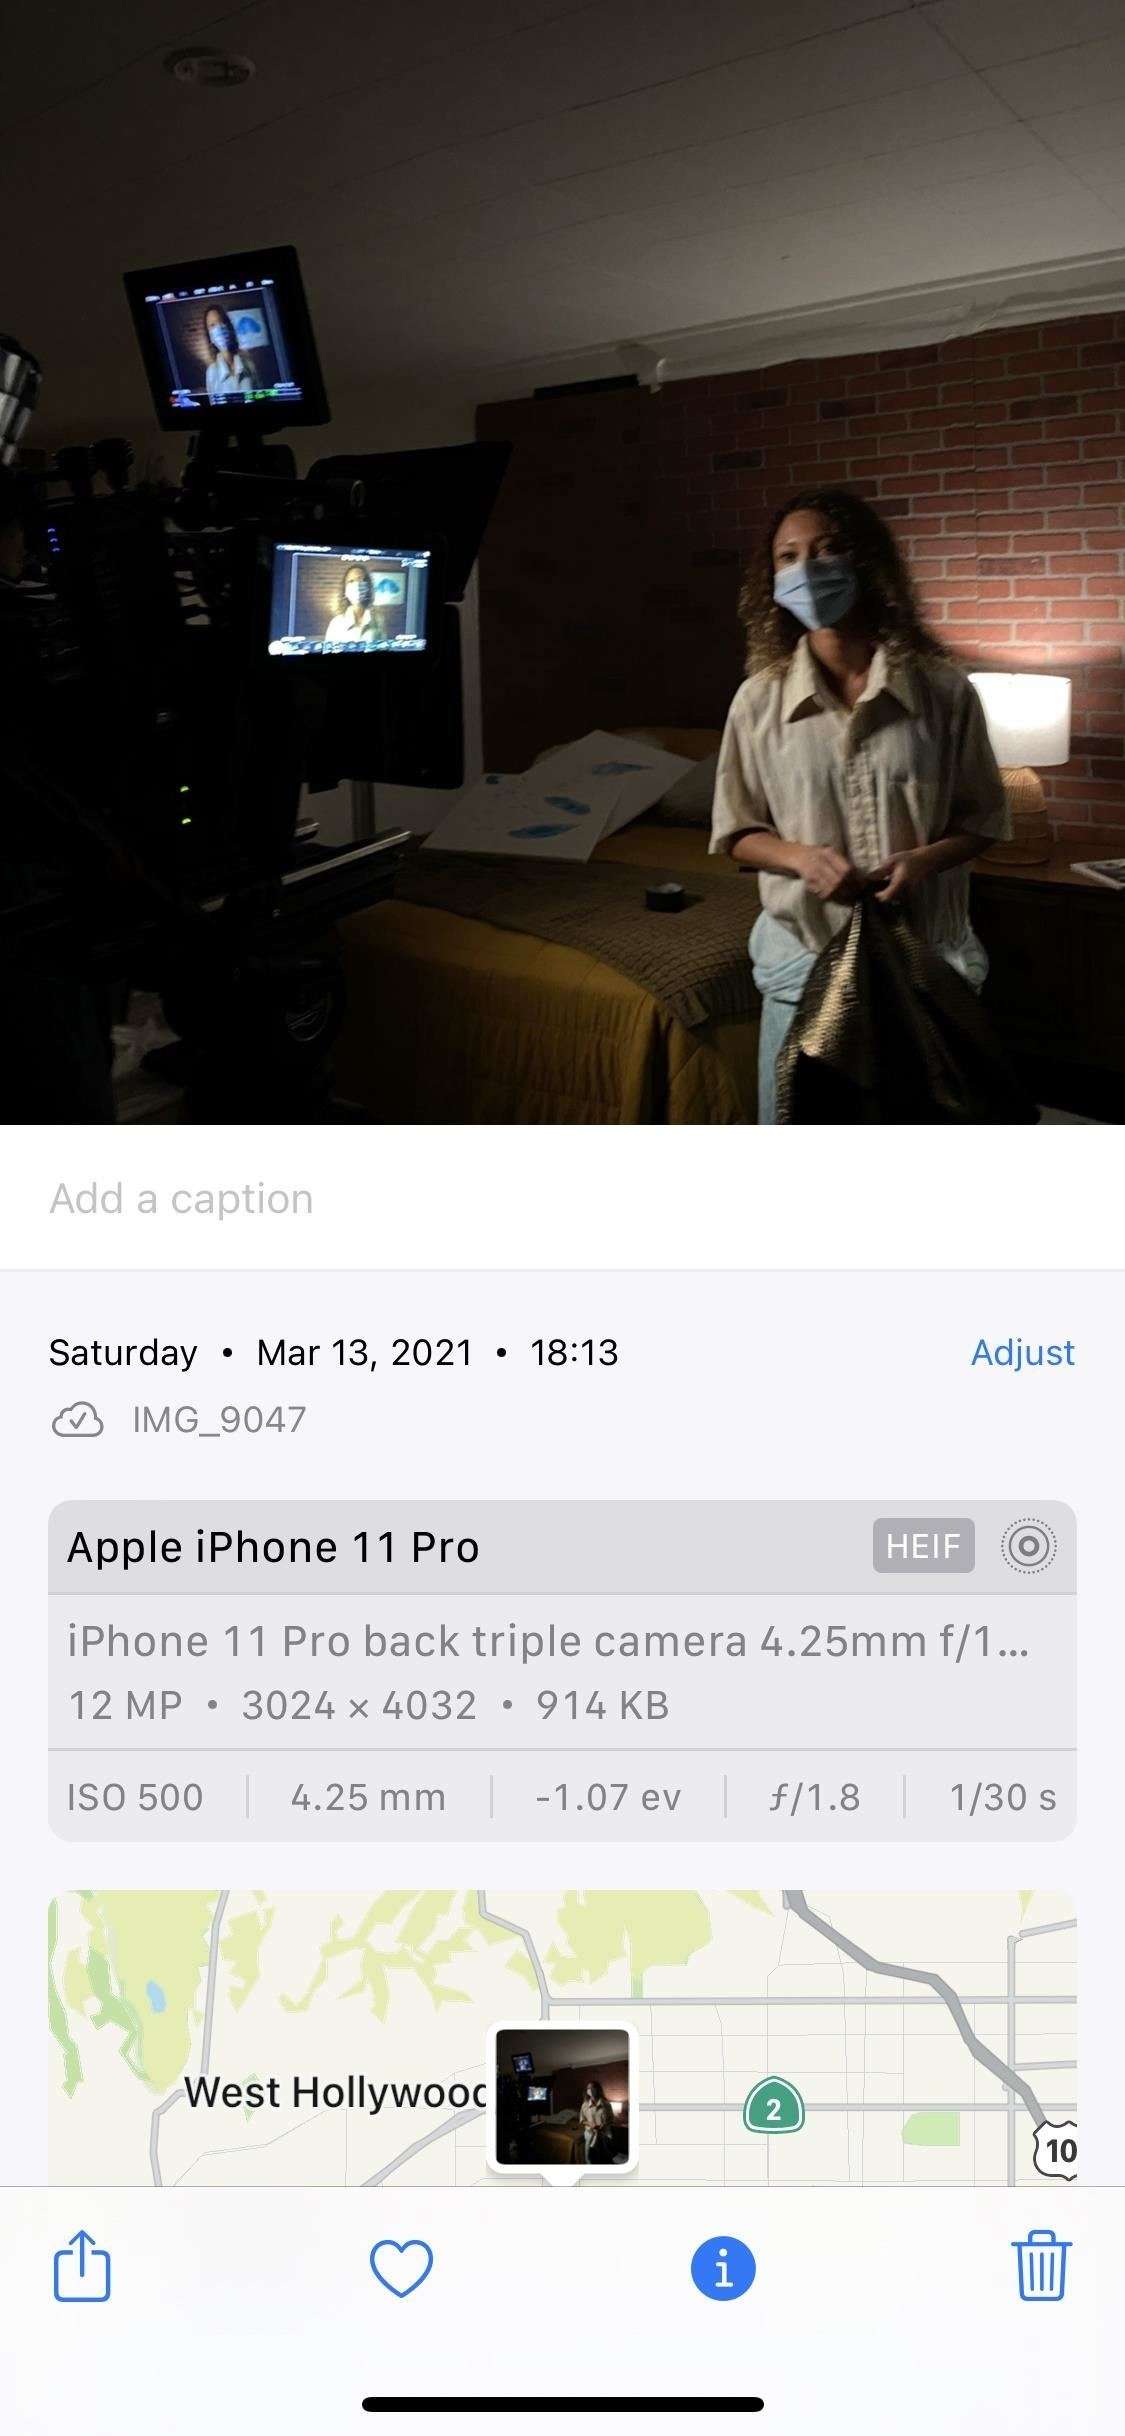 How to Restore the Original Location & Date/Time to Spoofed Photos & Videos on iOS 15